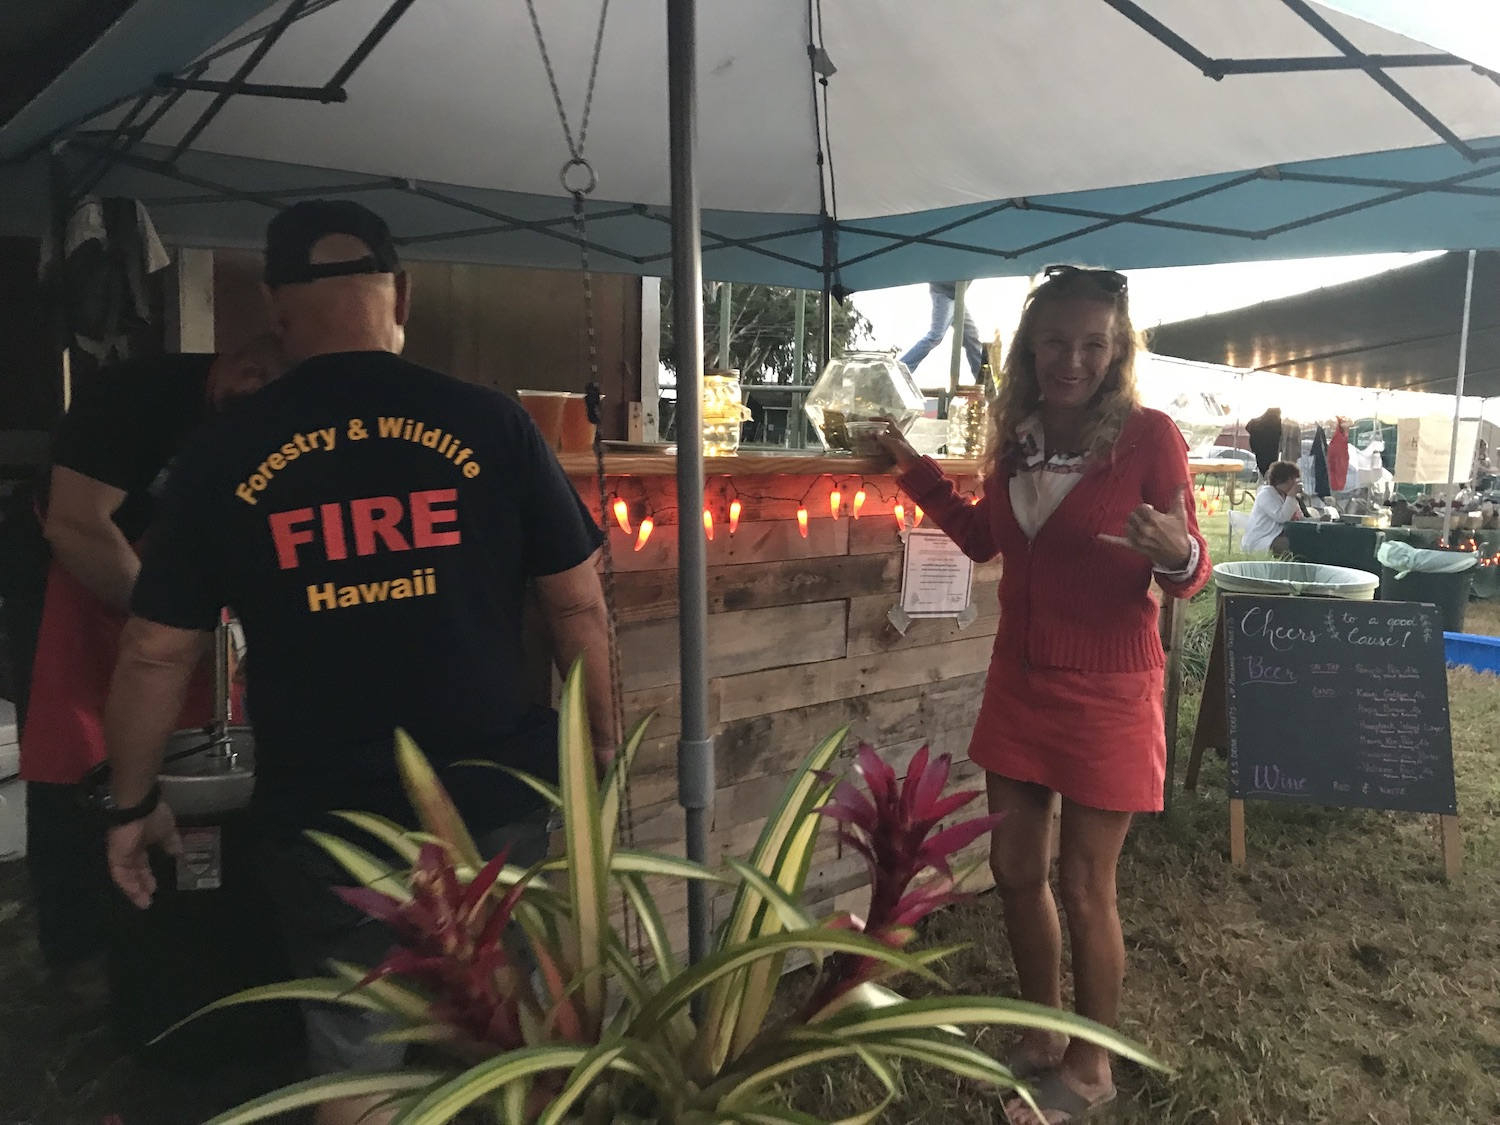 2nd Annual Firefighter Chili Cookoff for Wildfire Prevention_11_3_2018_31 copy.JPG